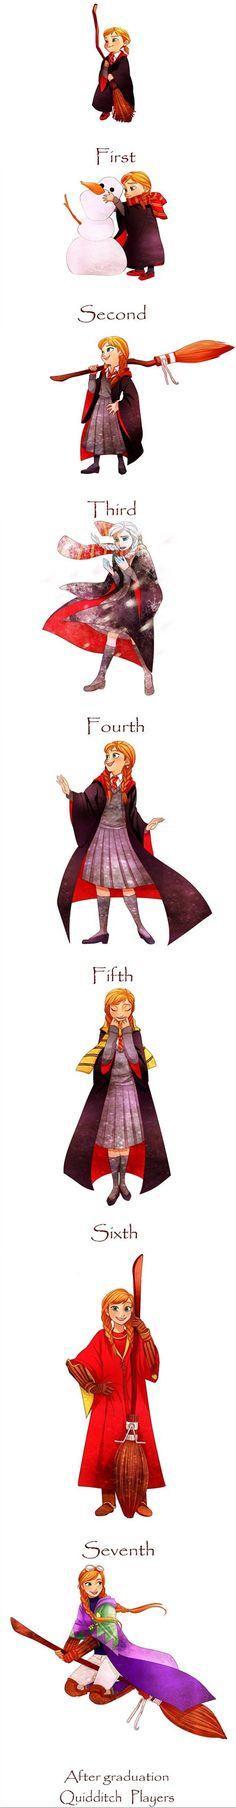 Anna at Hogwarts... I think she would be a HUFFLEPUFF though